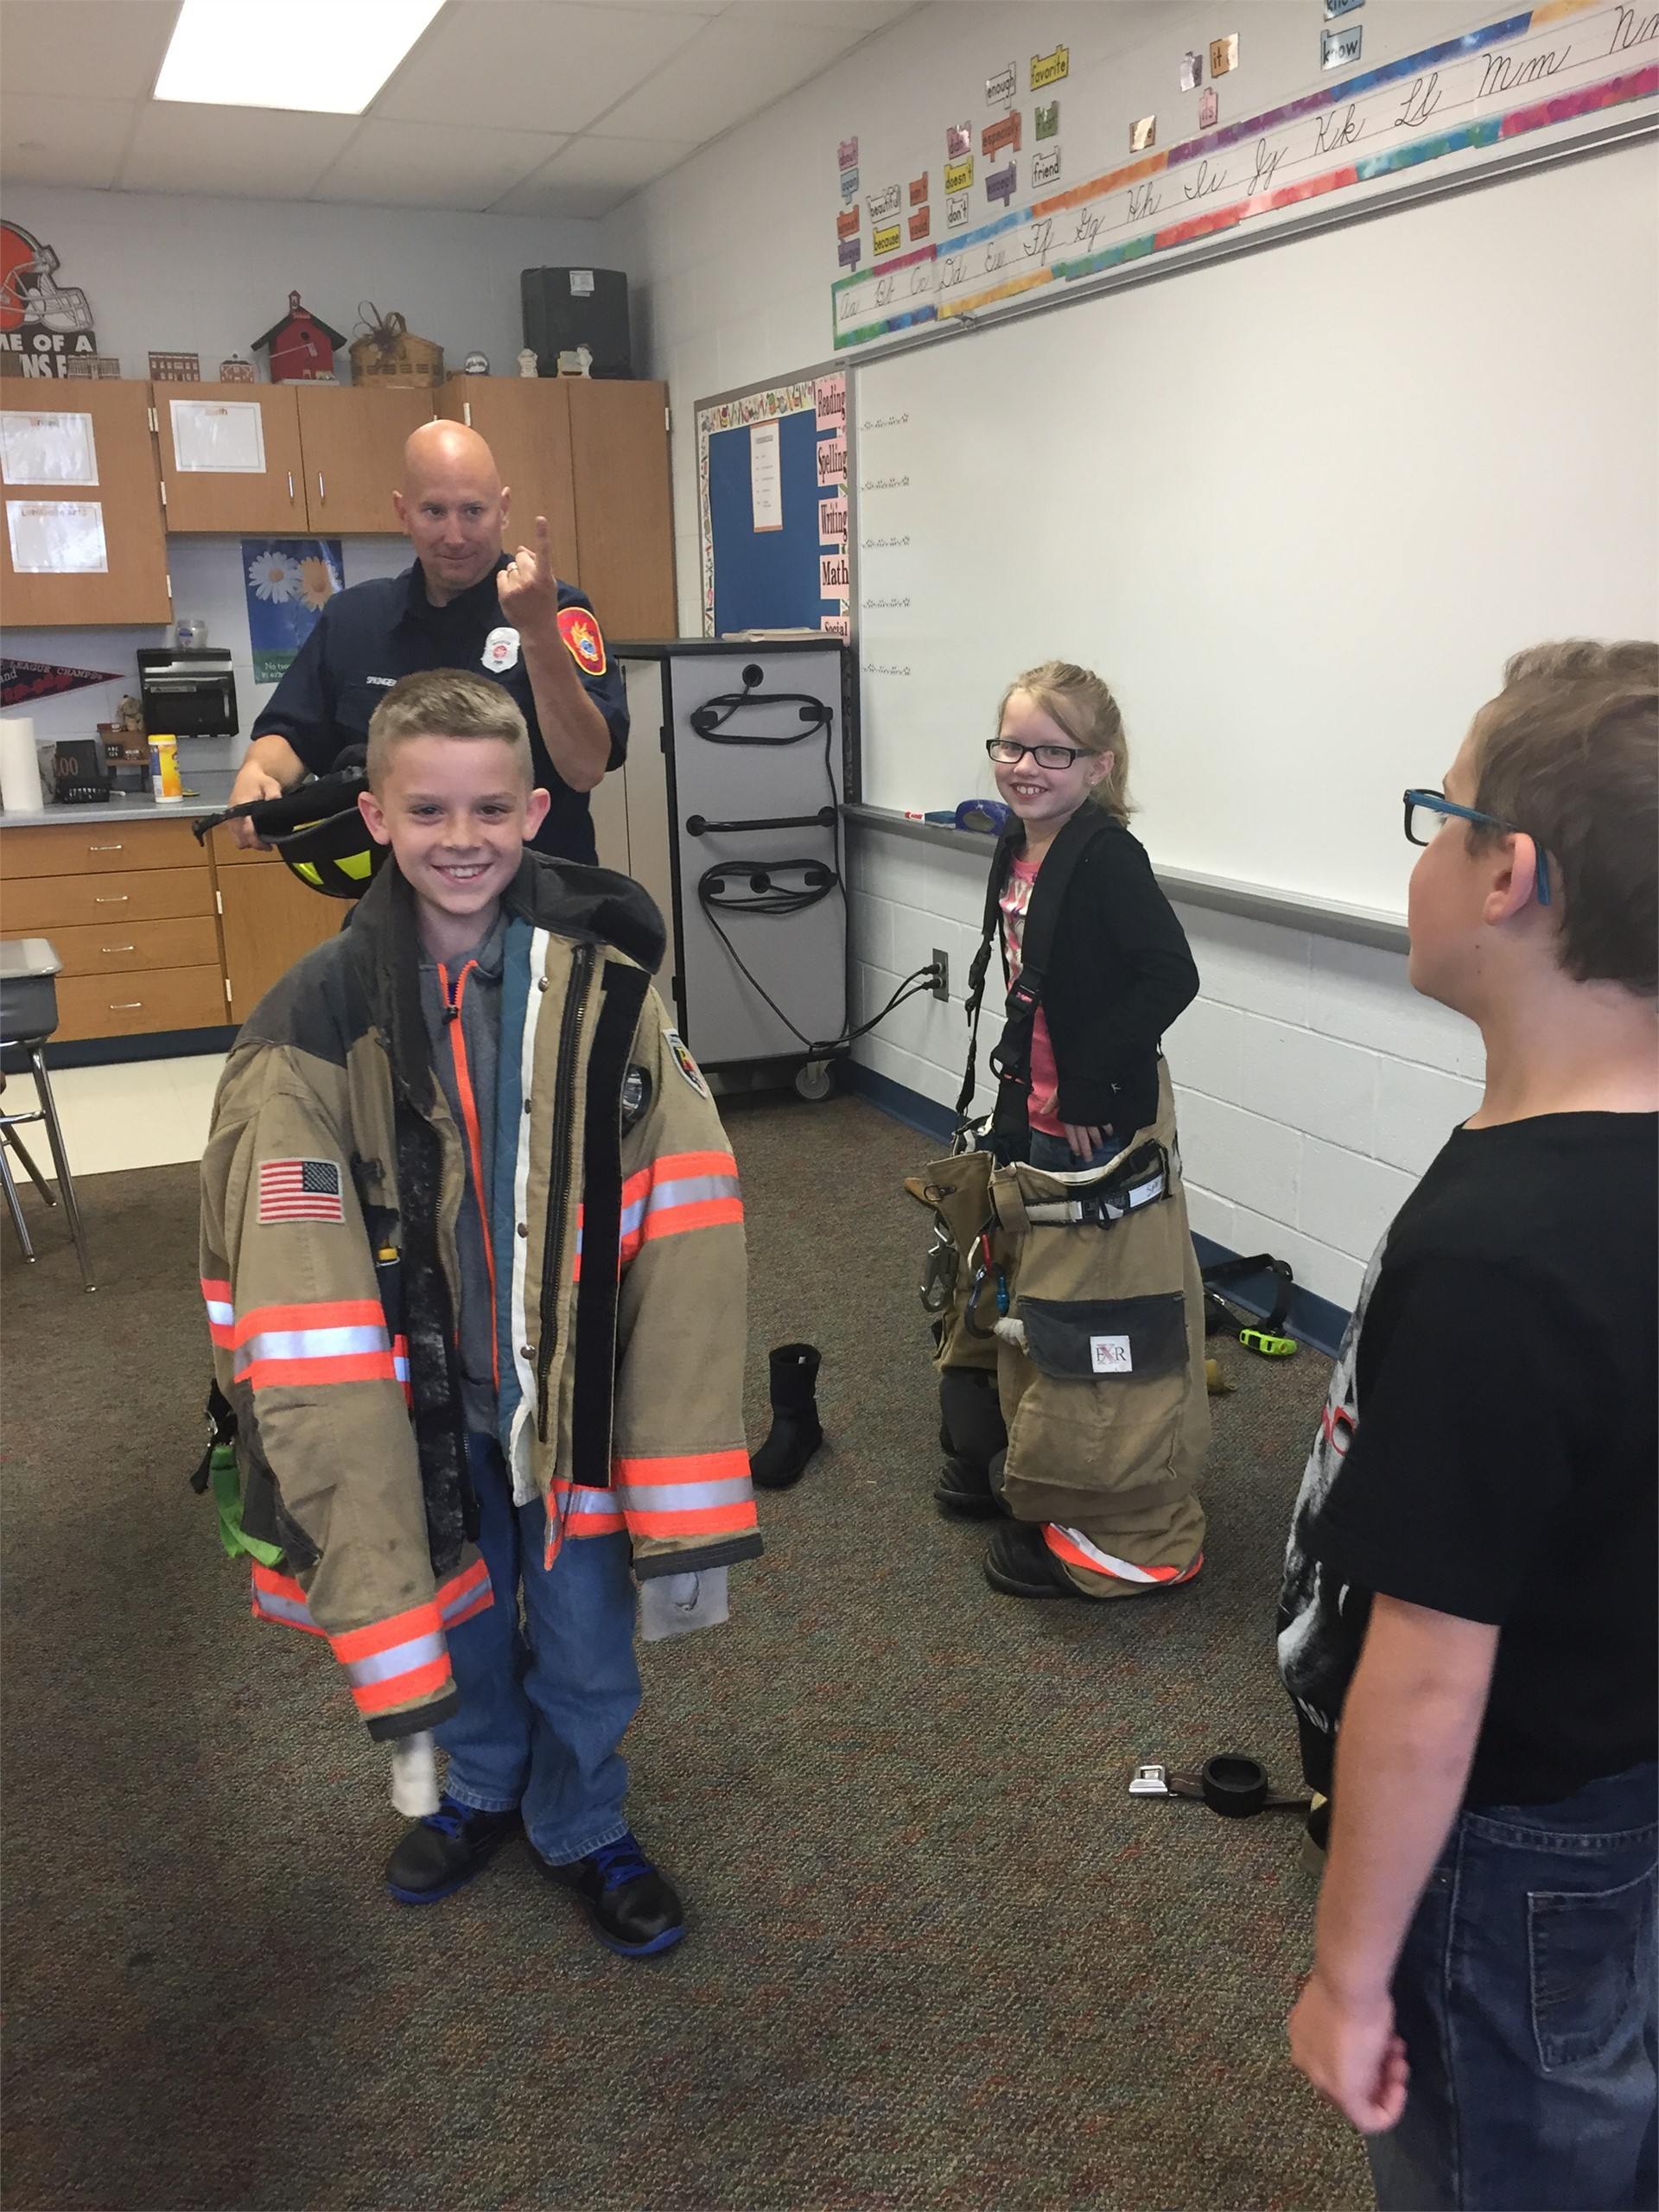 Mr. Springer showed us how to put on the gear!